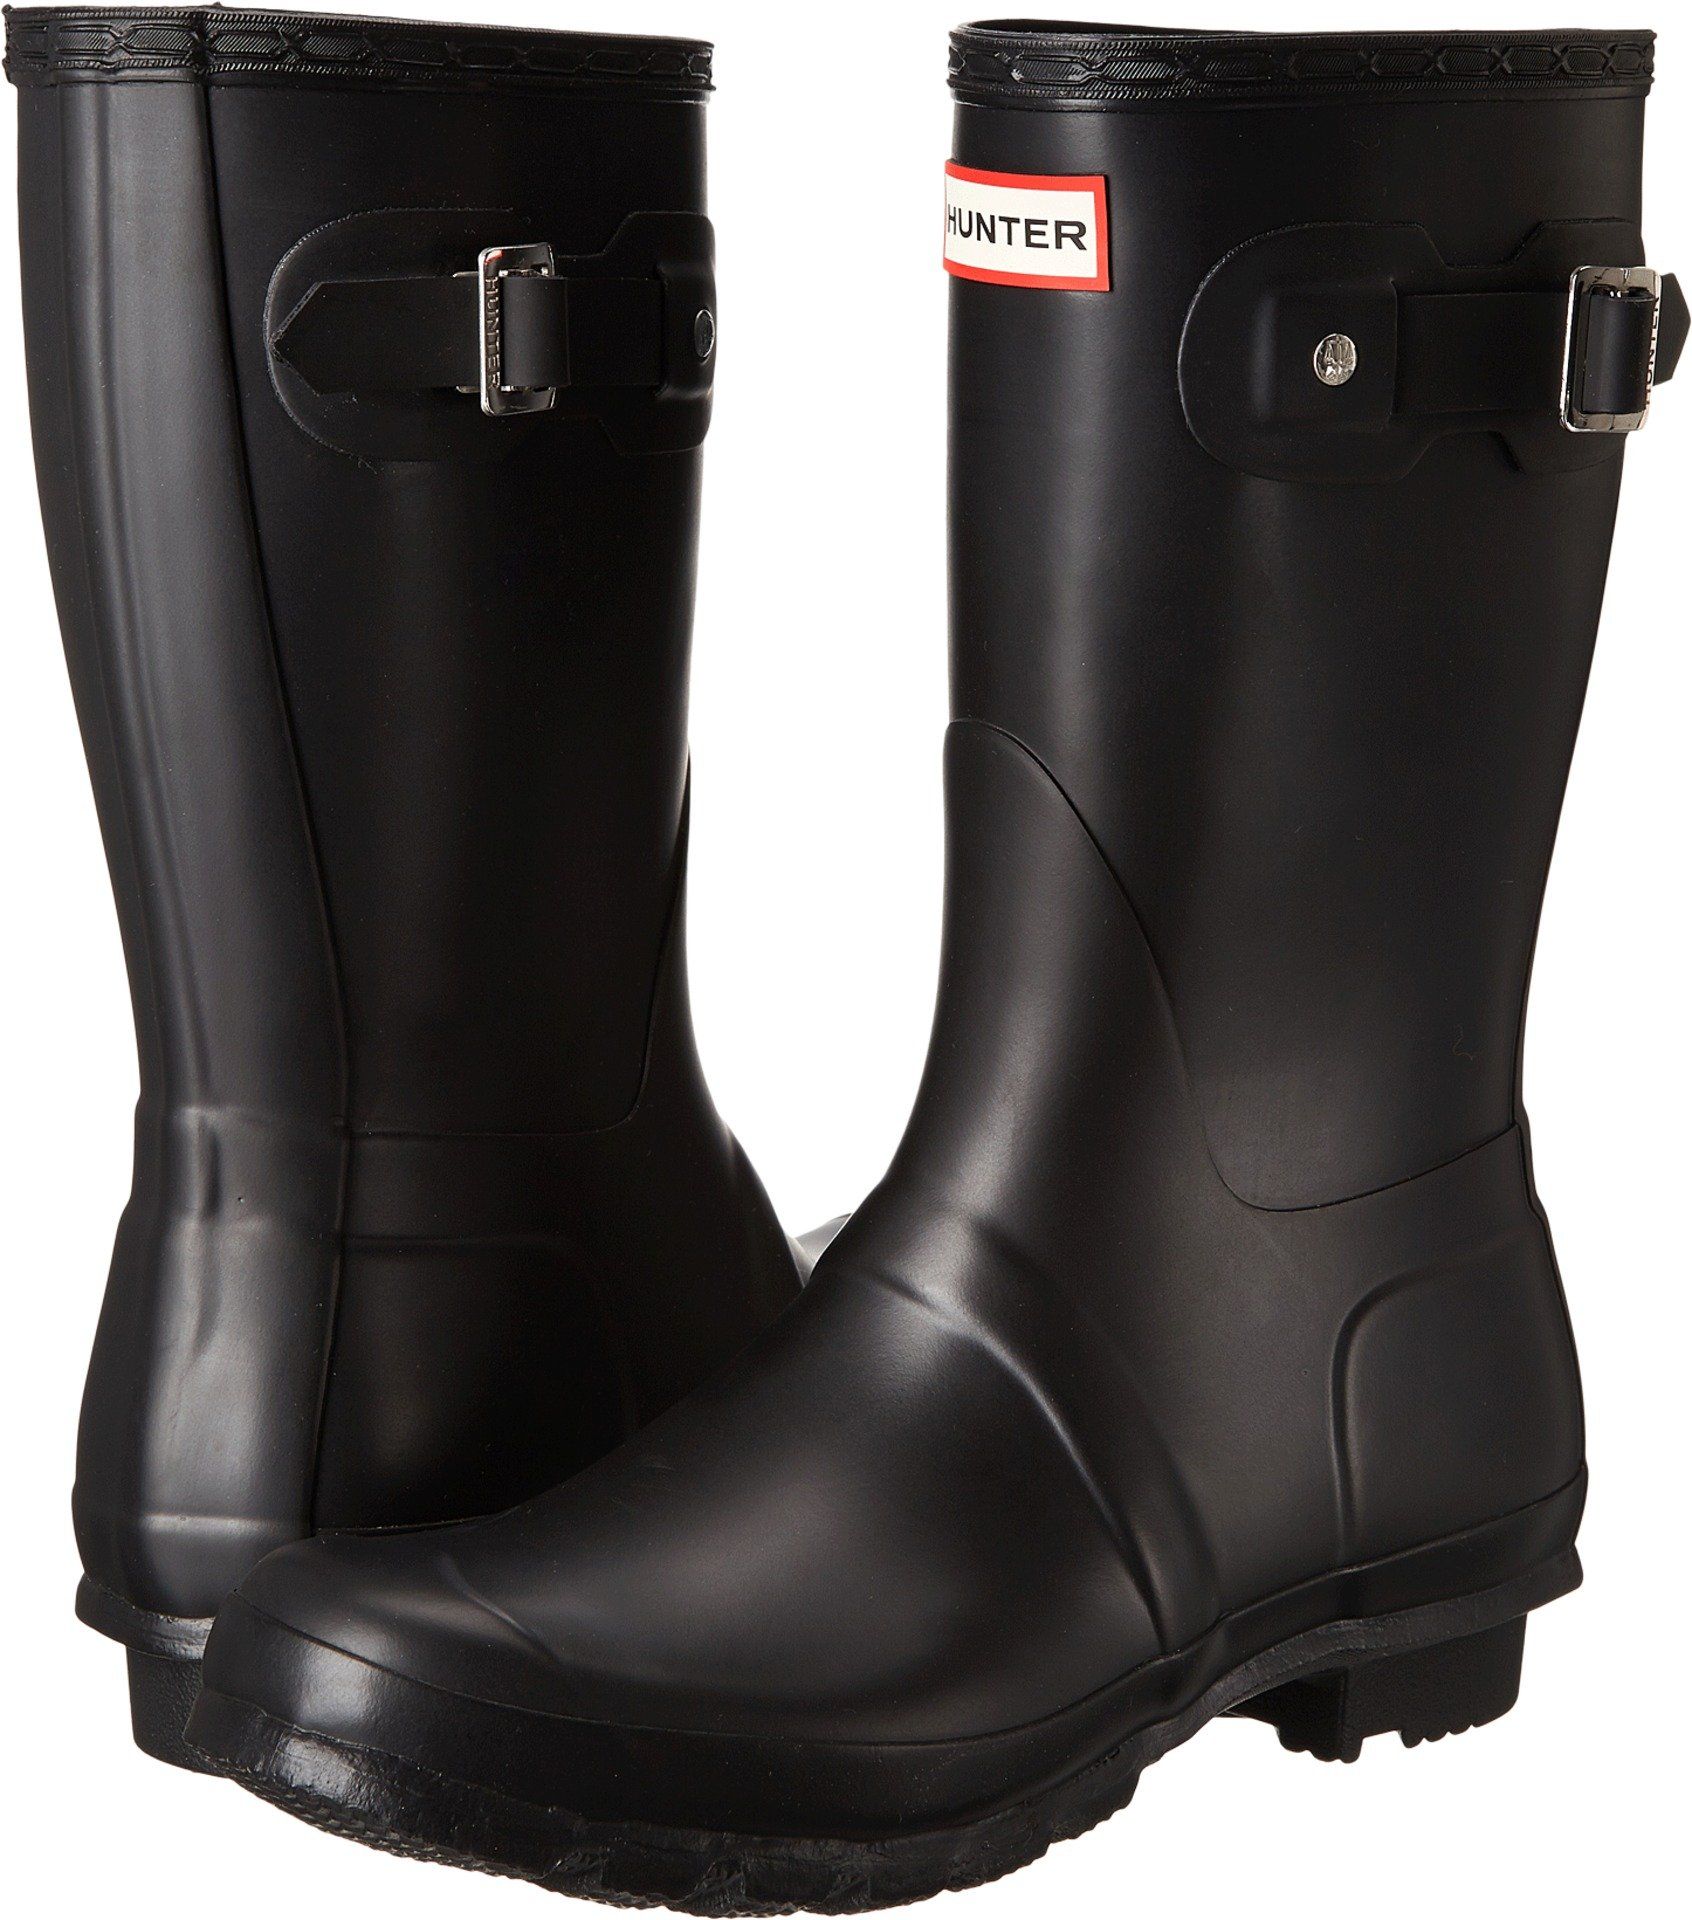 Hunter Womens Original Short Black Matte Rain Boot - 9 B(M) US by Hunter